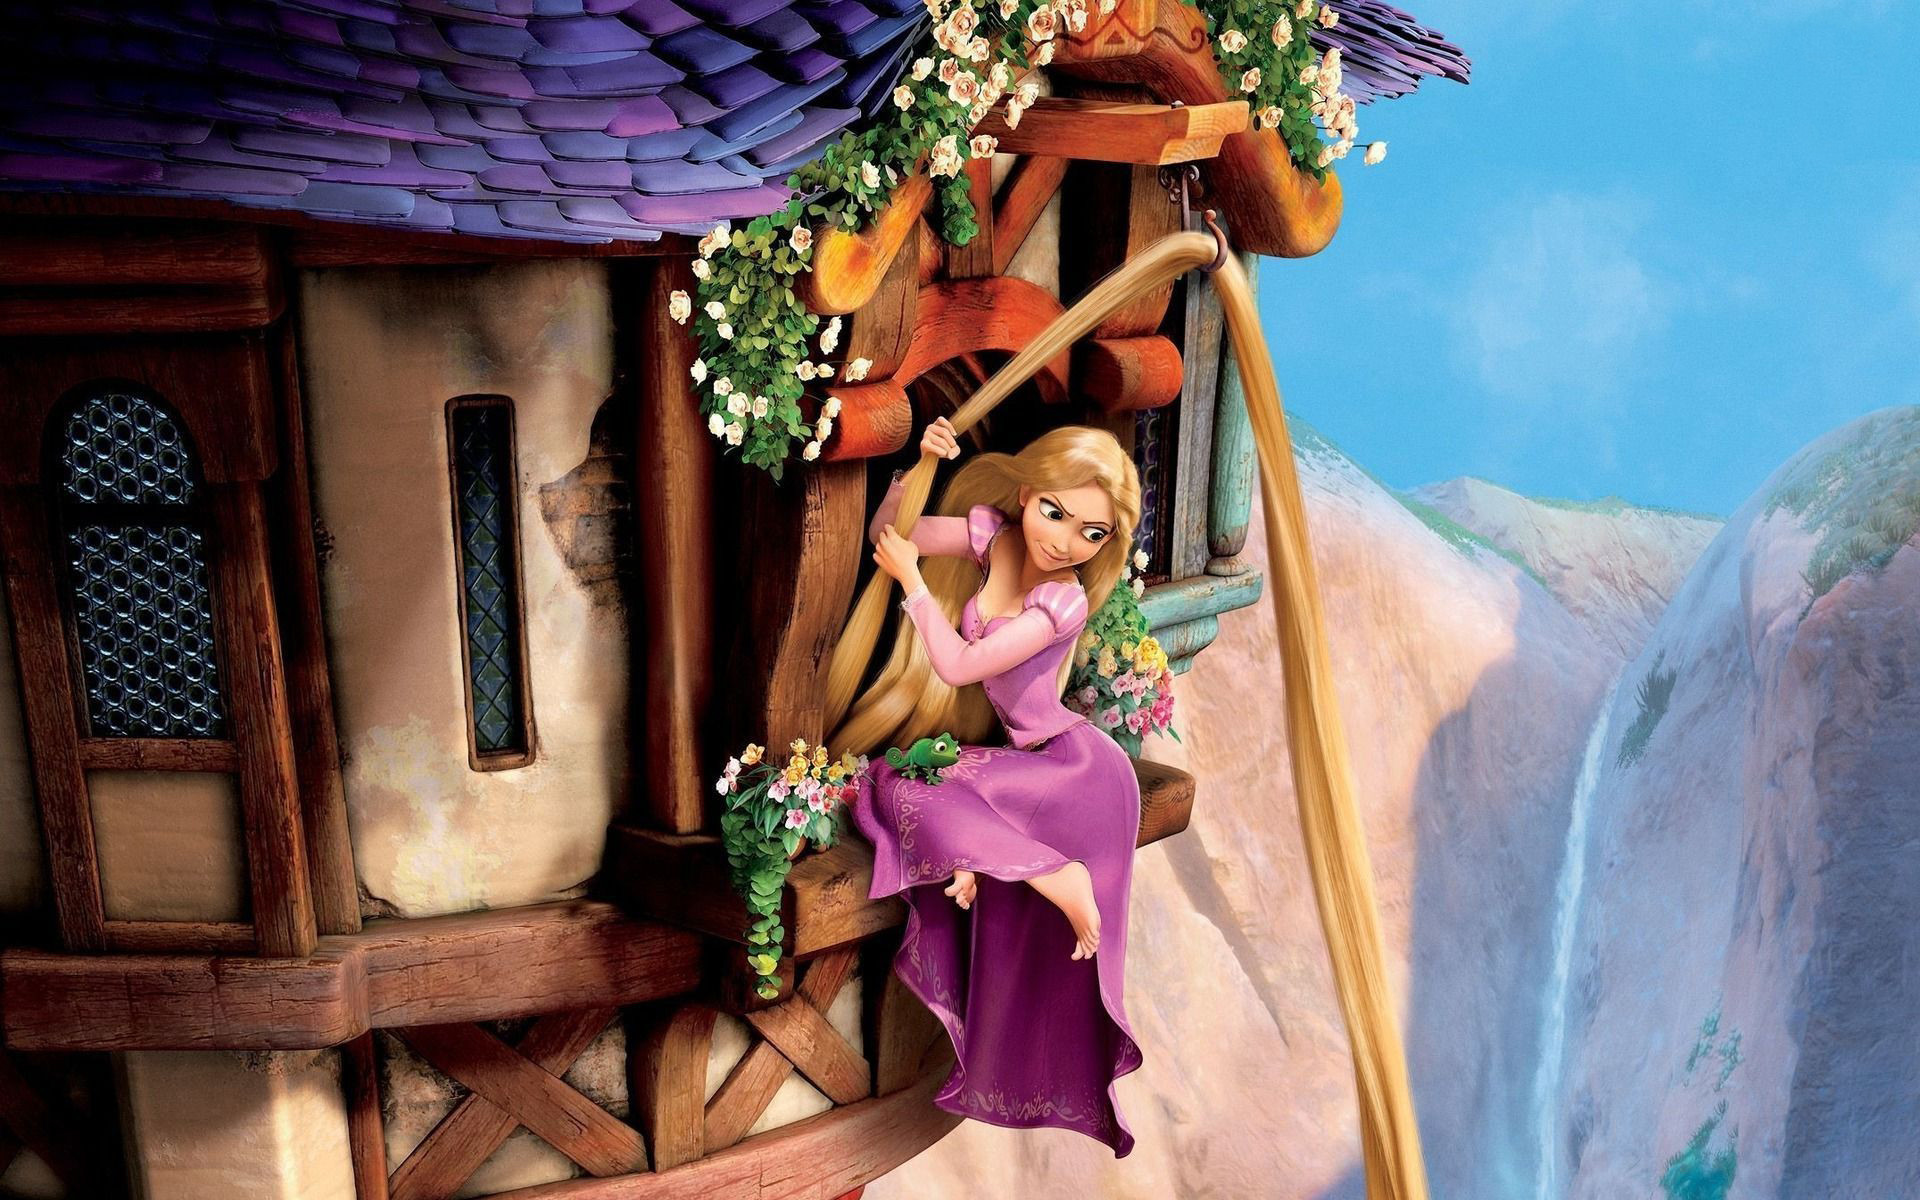 10 Tangled Rapunzel wallpapers hd for desktop